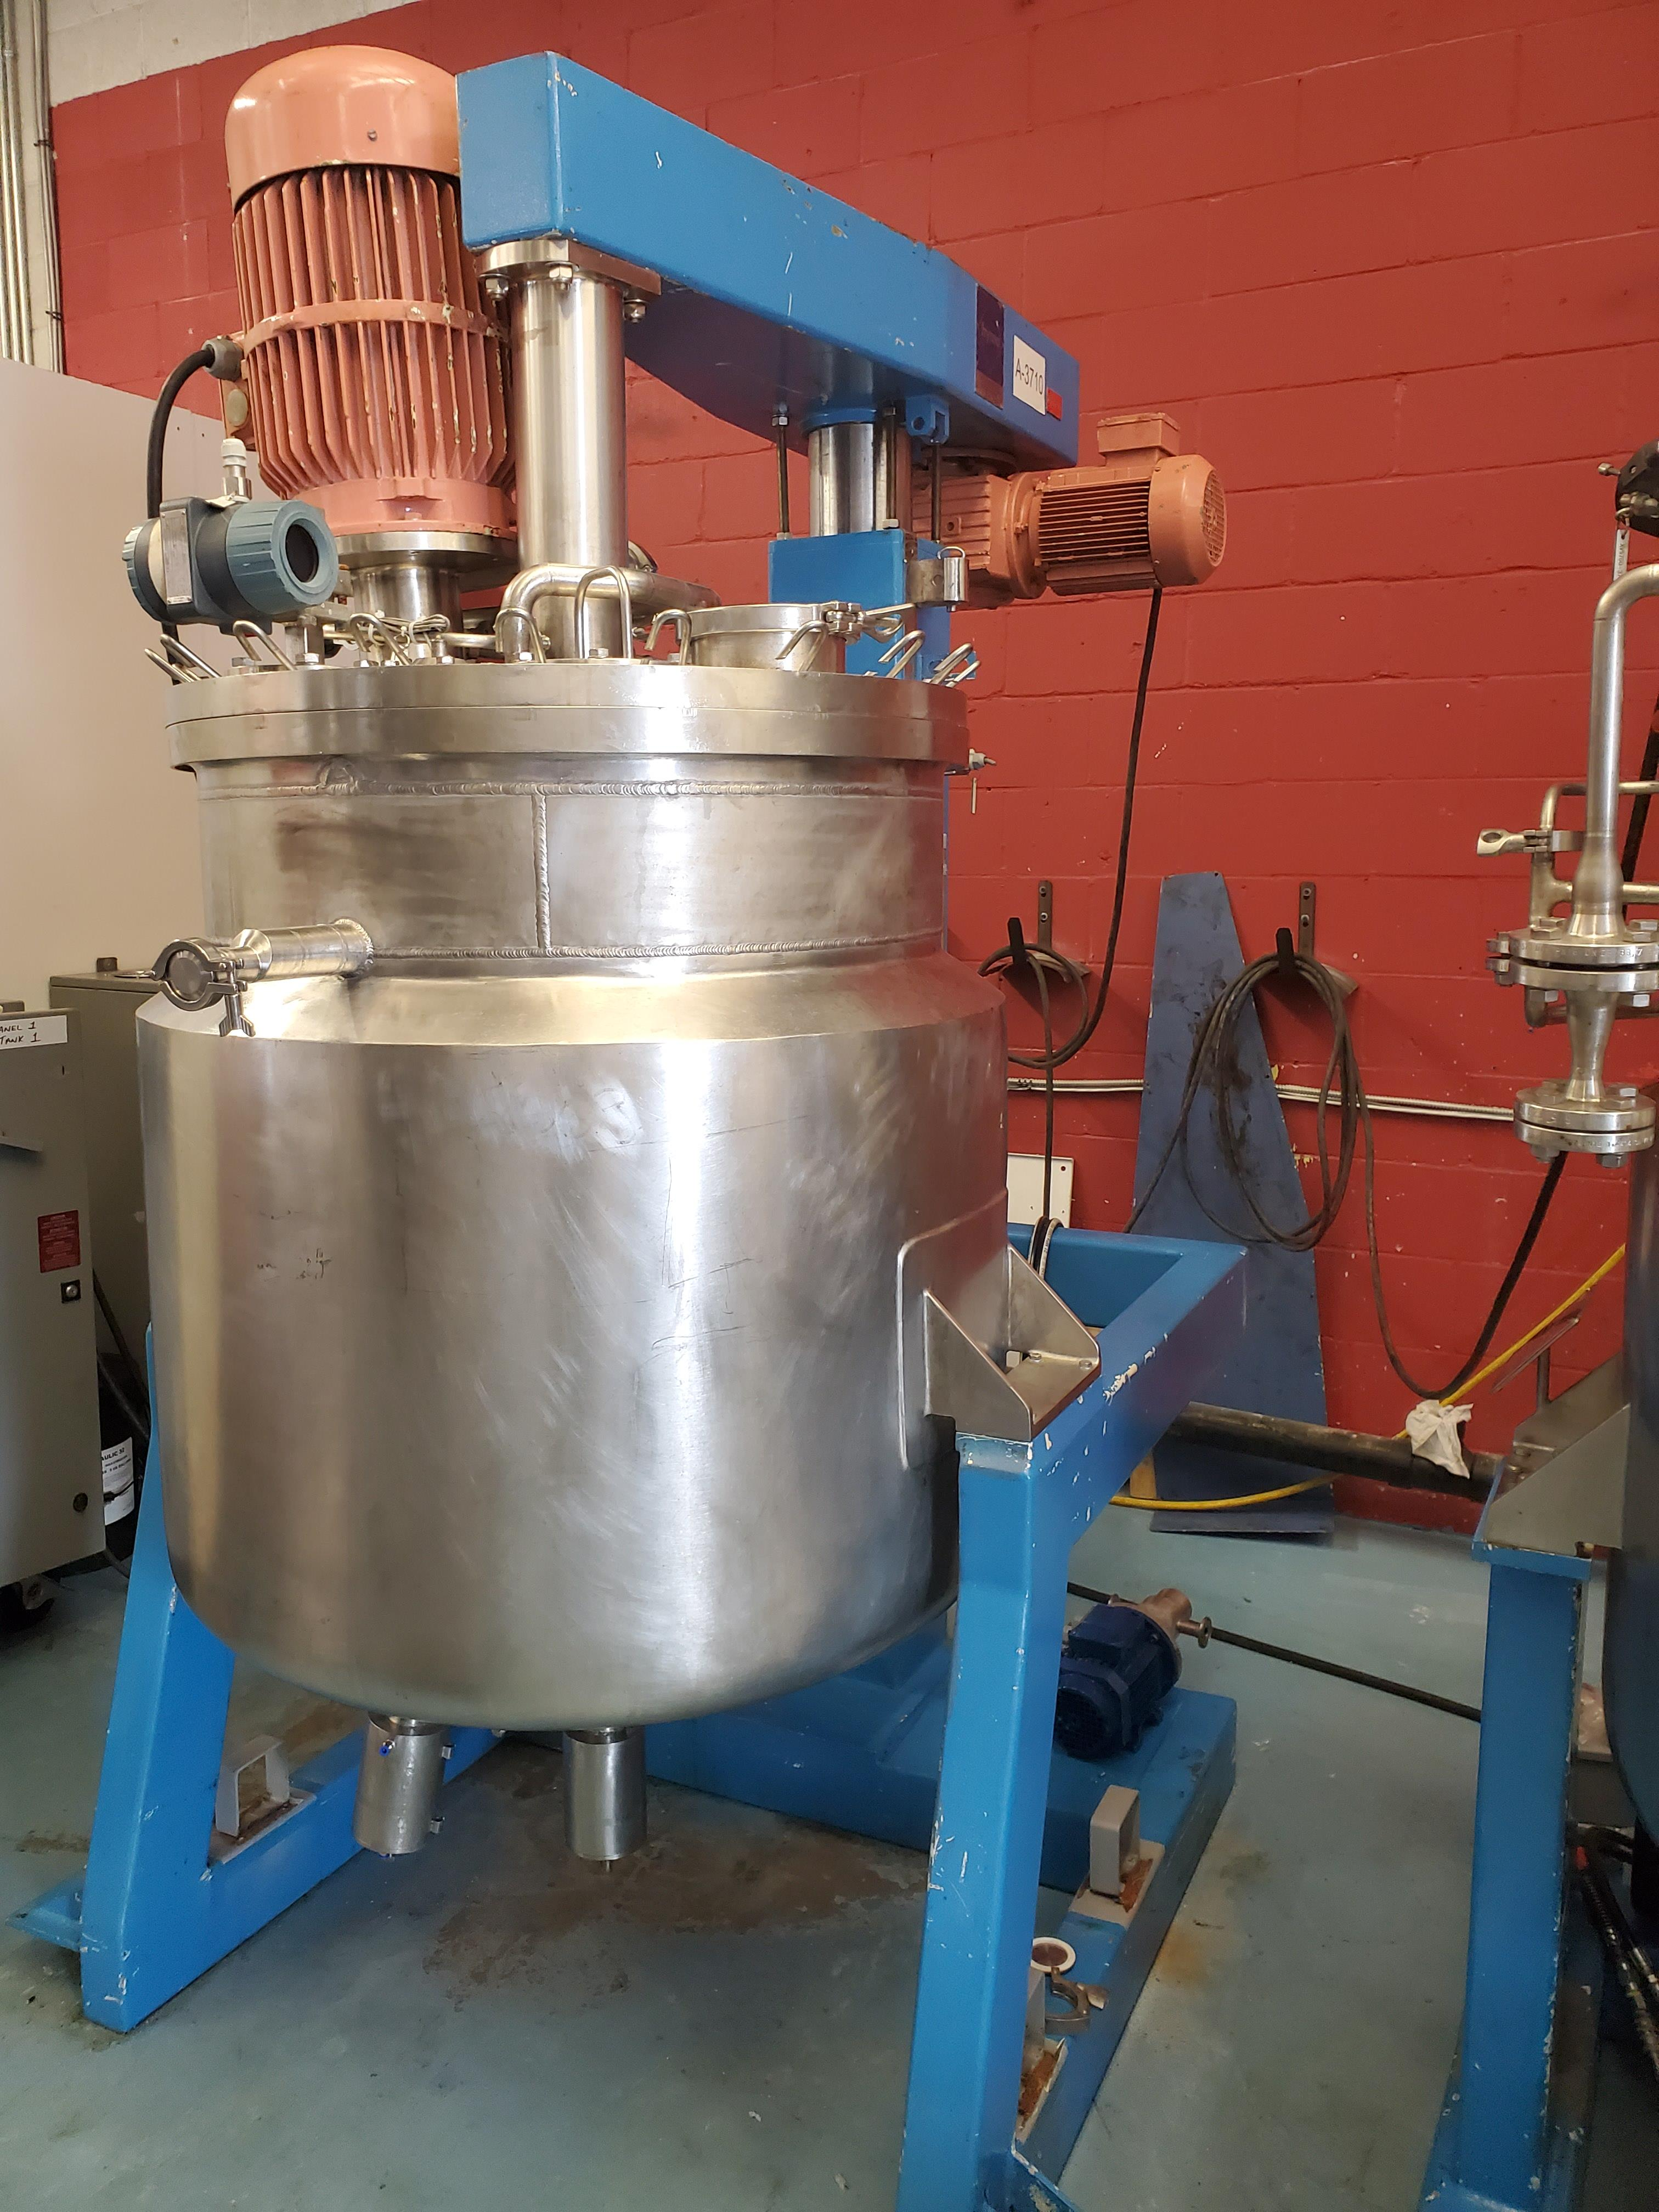 Fryma Homogenizing Vacuum Mixer - Stainless Steel Construction - Model VME250